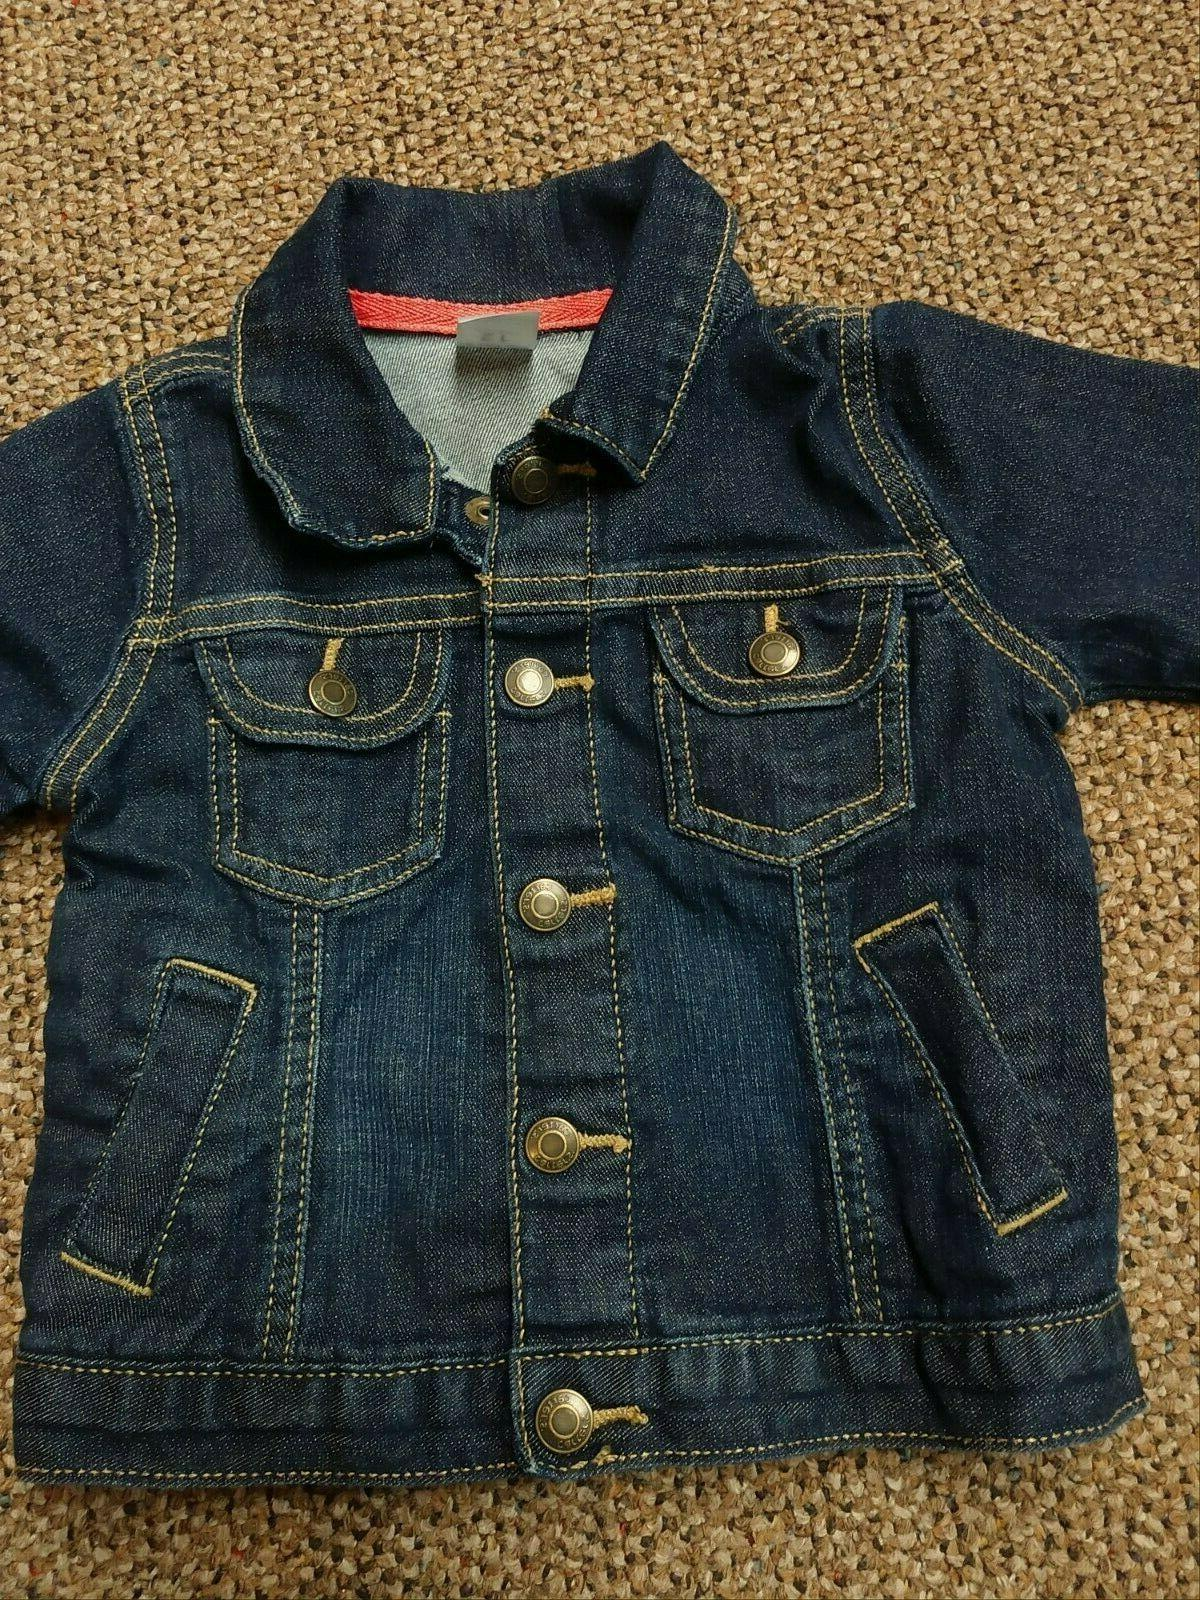 INFANT GIRLS CARTER'S DENIM JACKET outerwear STRETCH BABY EUC